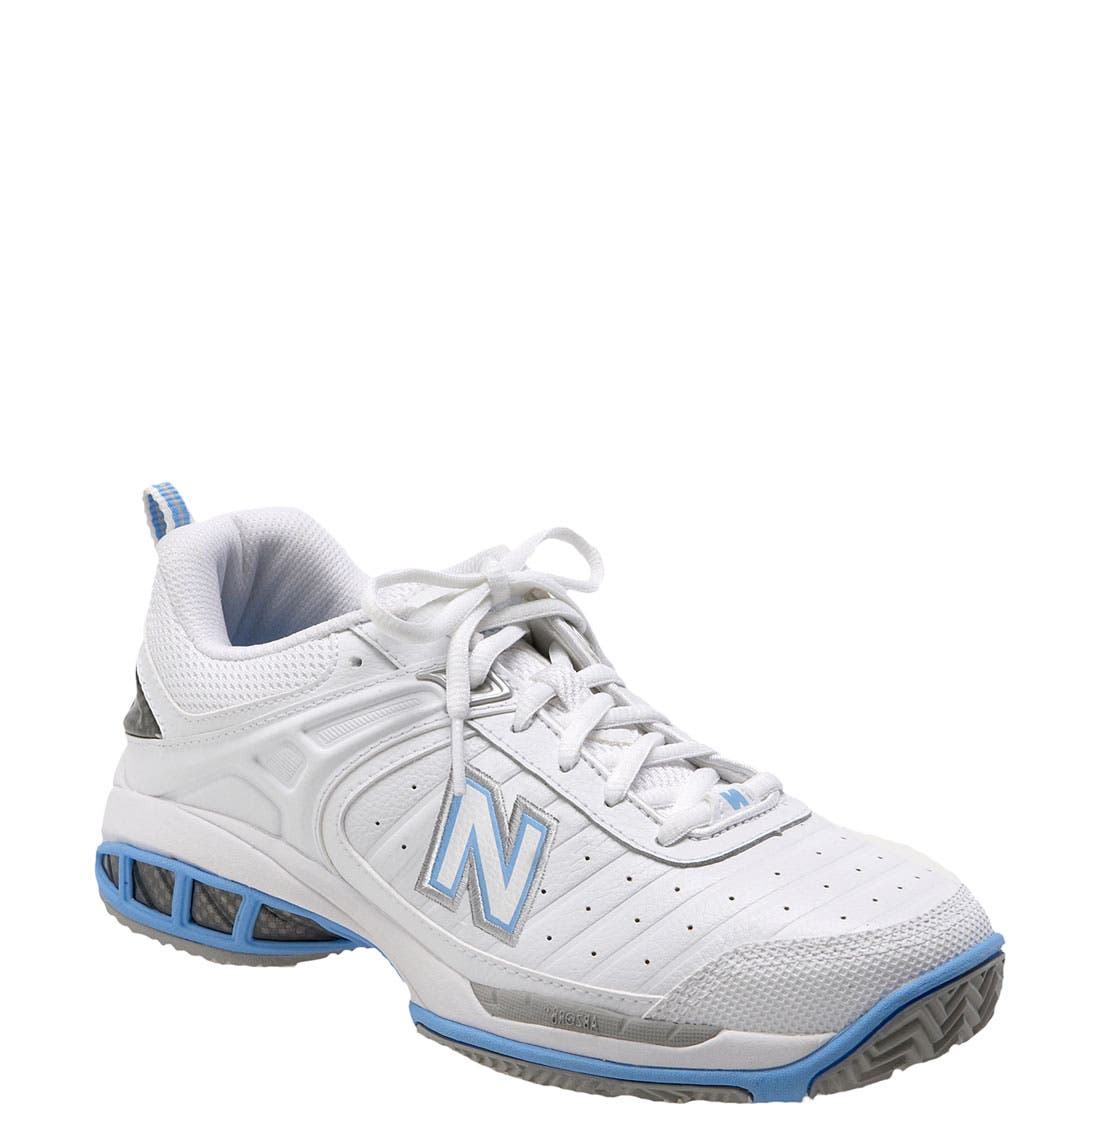 Main Image - New Balance '804' Tennis Shoe (Women)